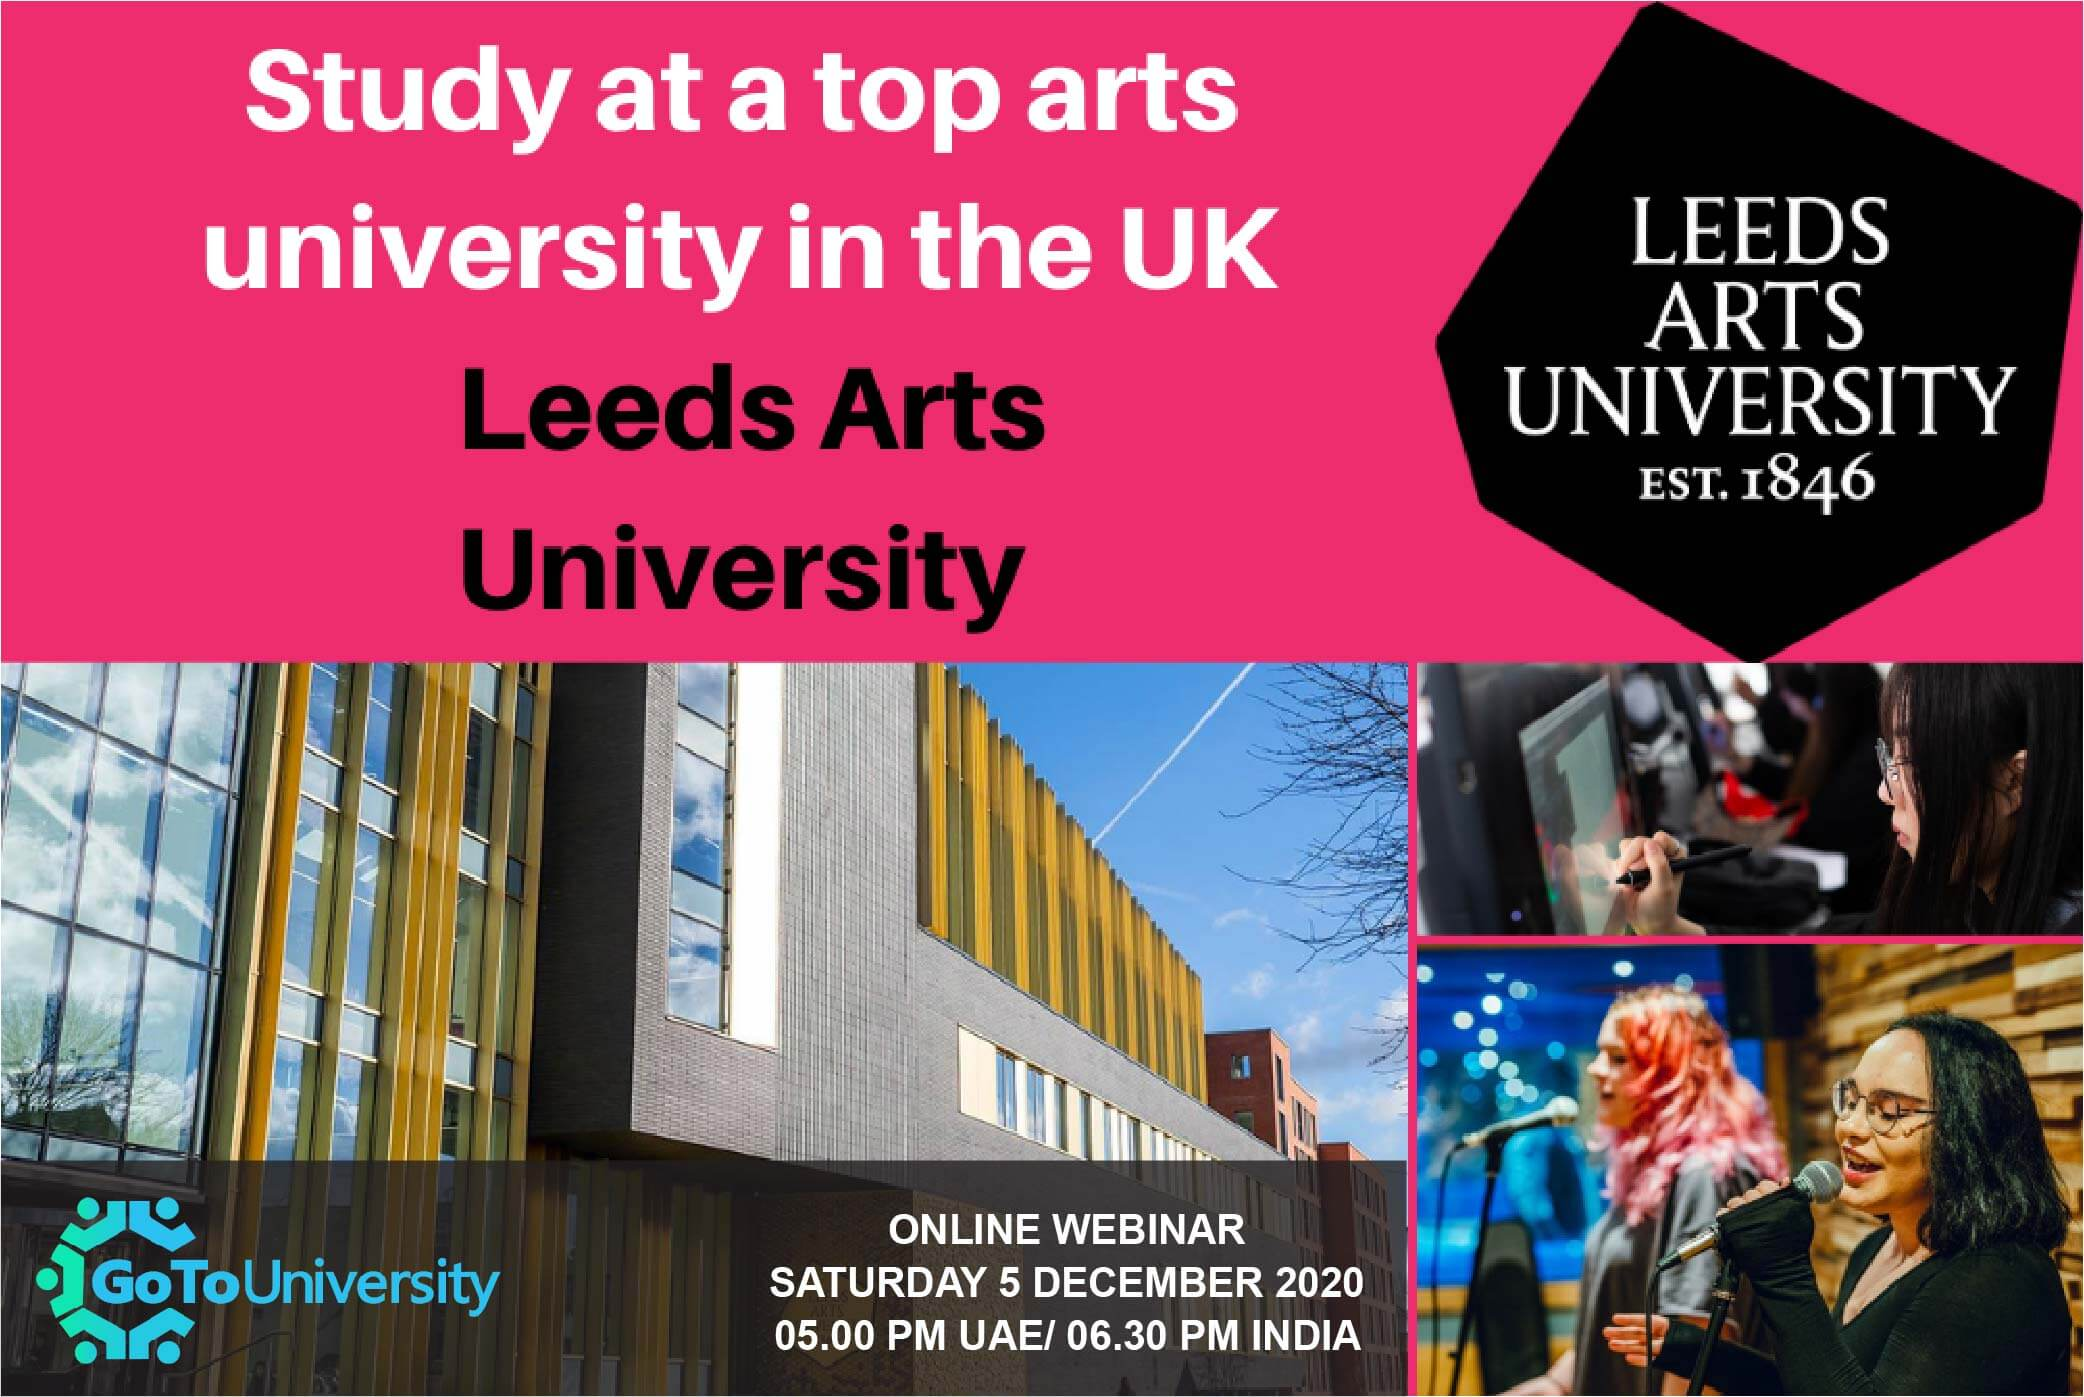 Study at a top arts university in the UK with Leeds Arts University